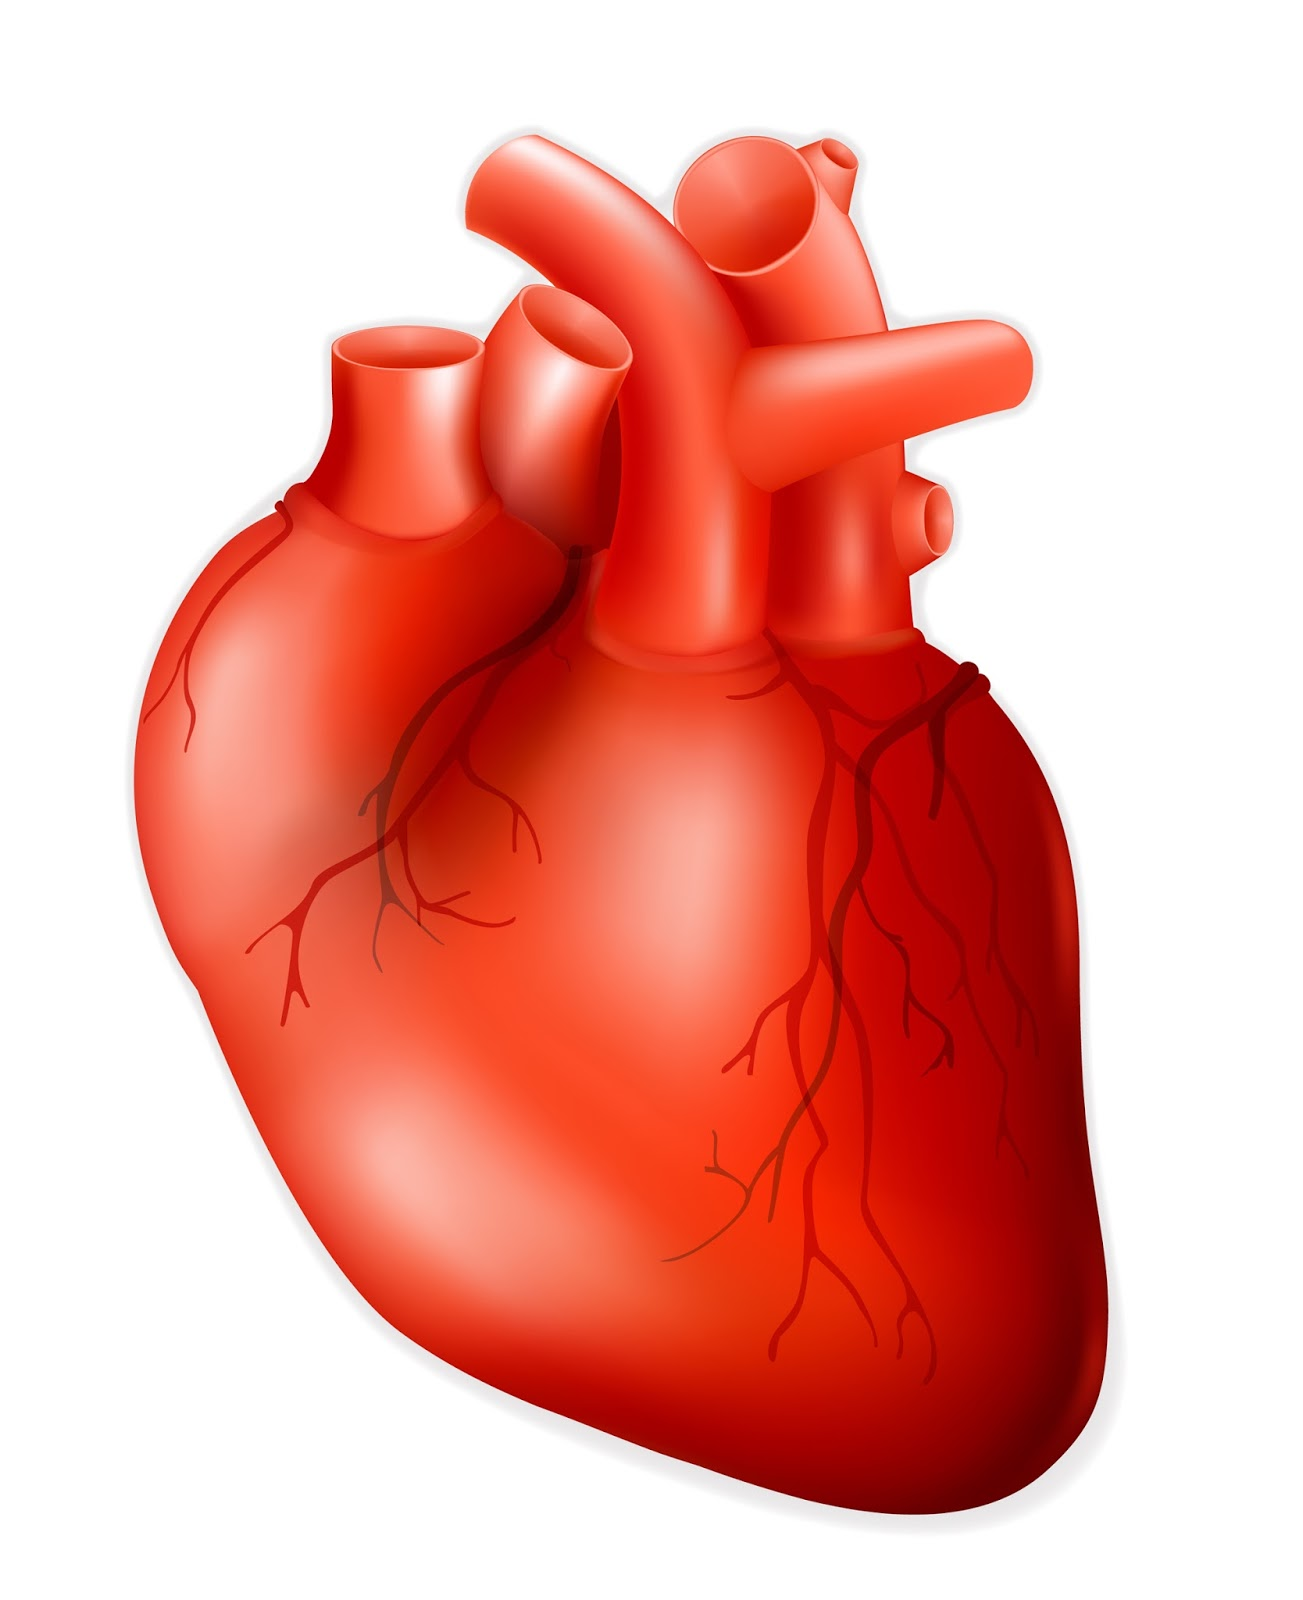 Free Heart Human, Download Free Clip Art, Free Clip Art on